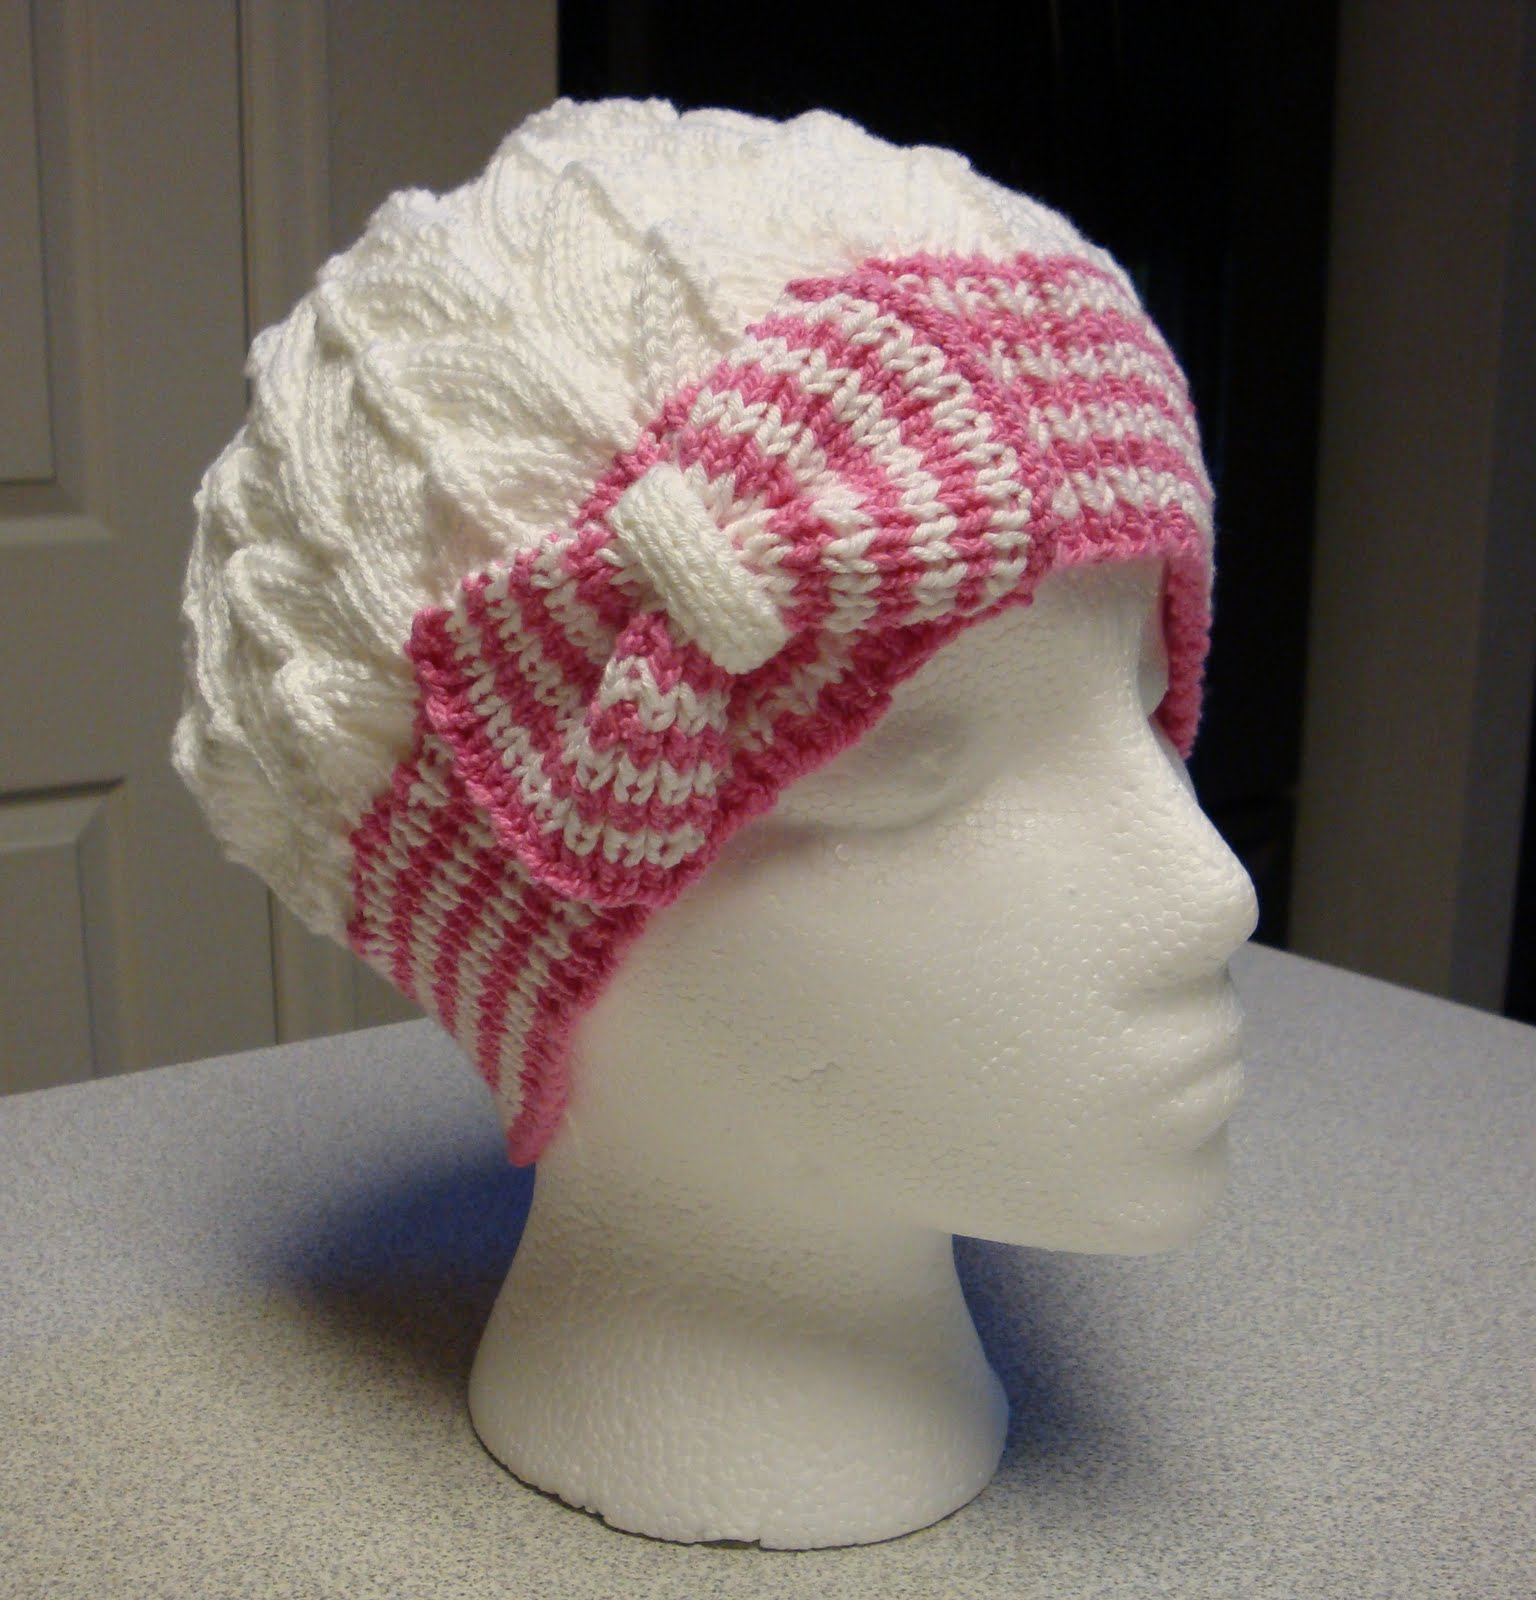 Knit Patterns For Hats For Cancer Patients : CROCHET CHEMO HAT PATTERNS   Crochet For Beginners